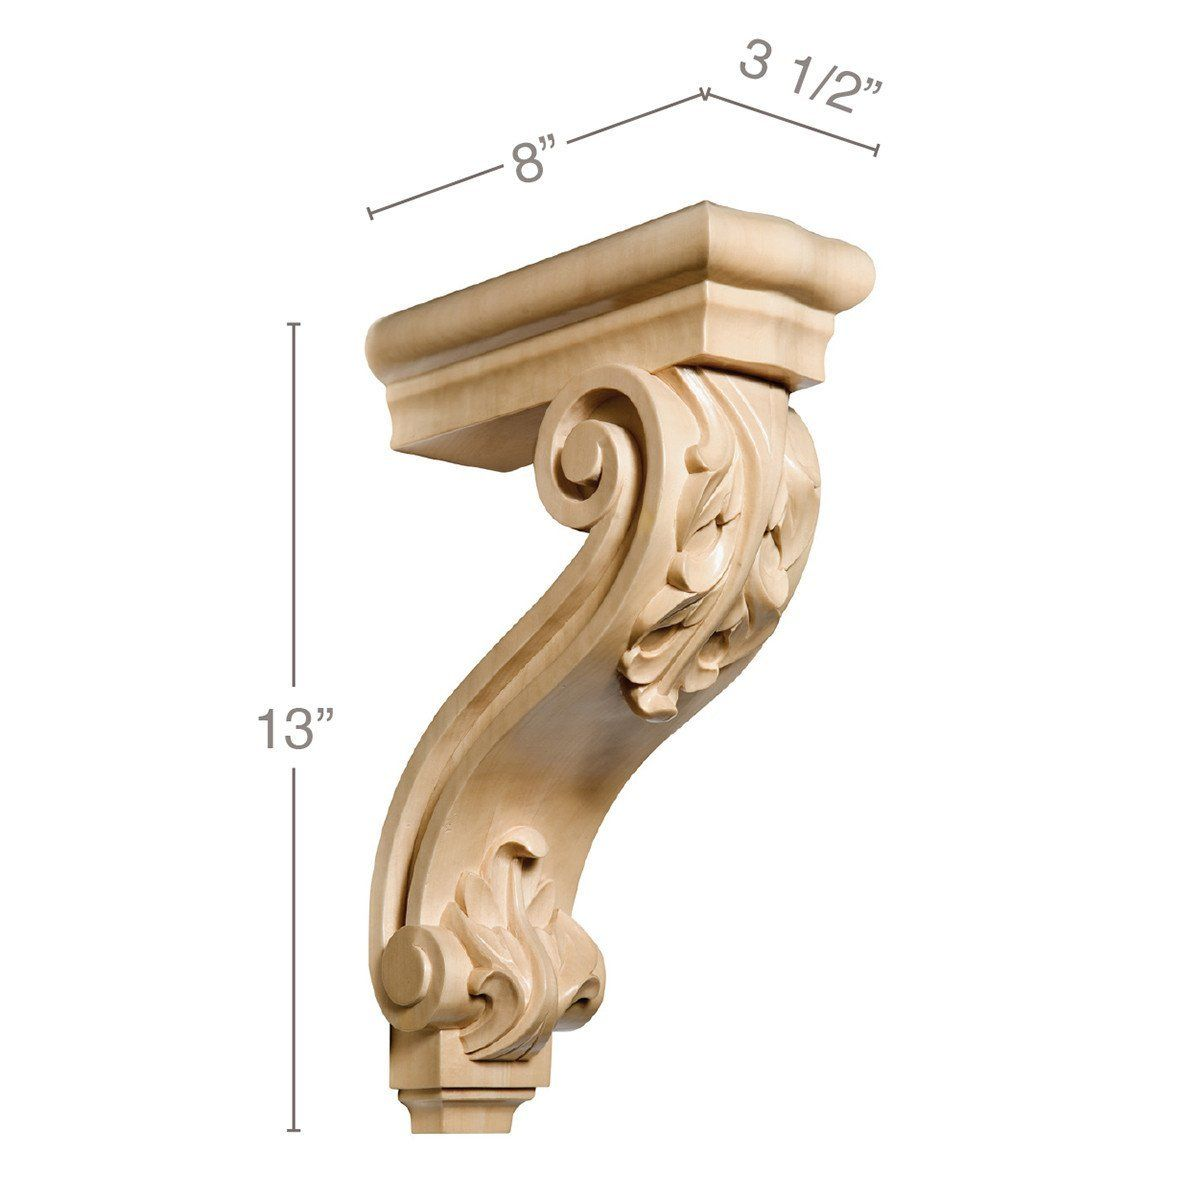 Acanthus Bracket Corbel 3 1 2 W X 13 H X 8 D Corbels Rustic Home Decor Quirky Earrings